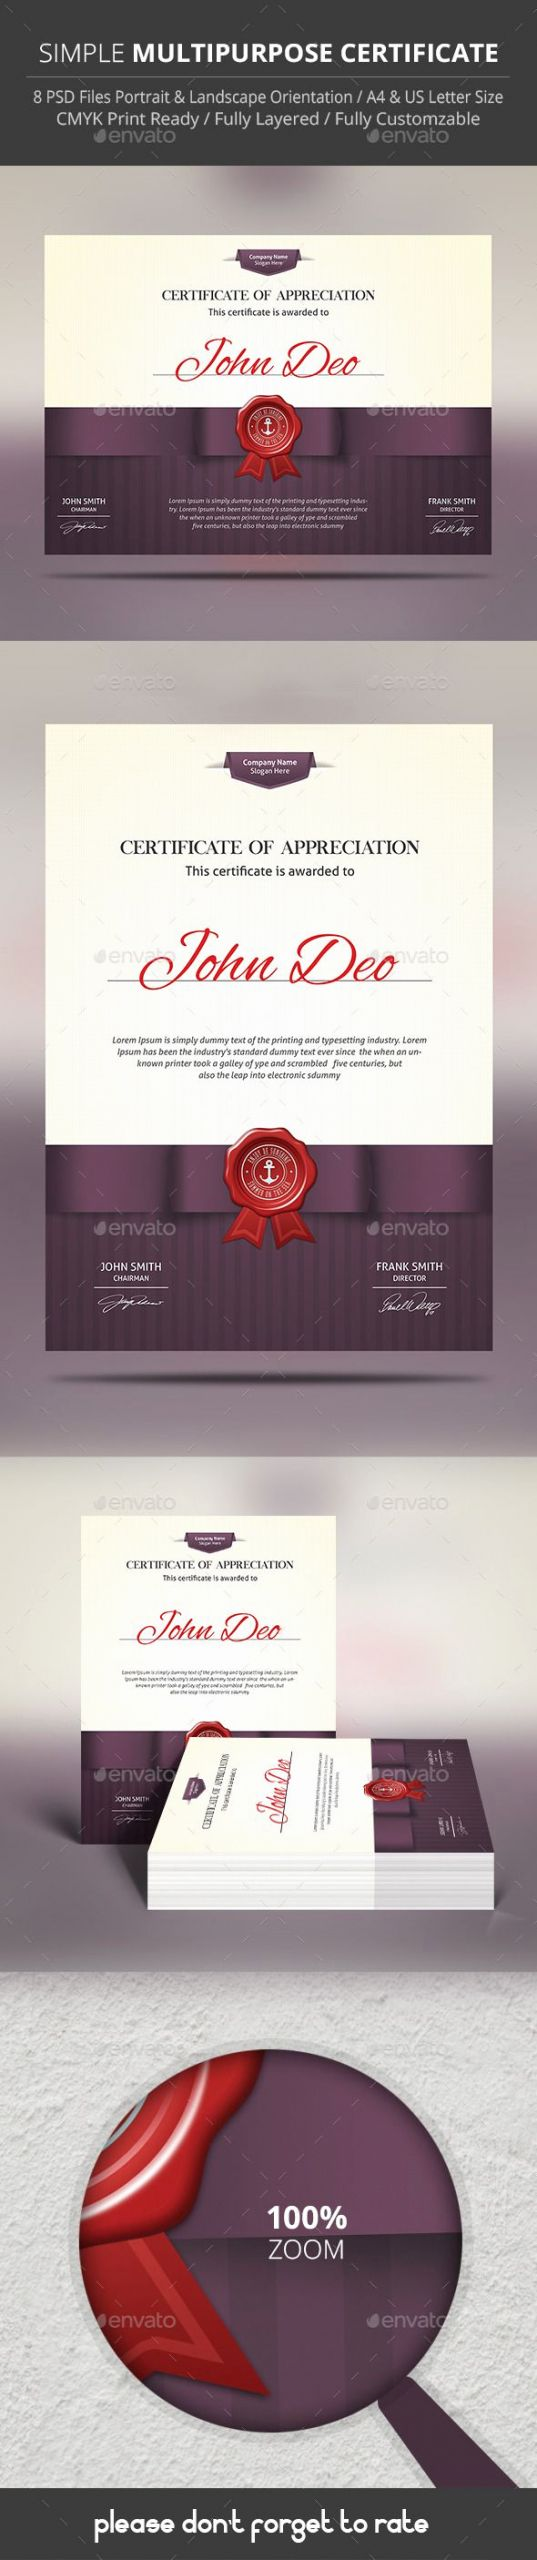 Nwcg Training Certificate Template Lovely 25 Best Ideas About Certificate Achievement Template